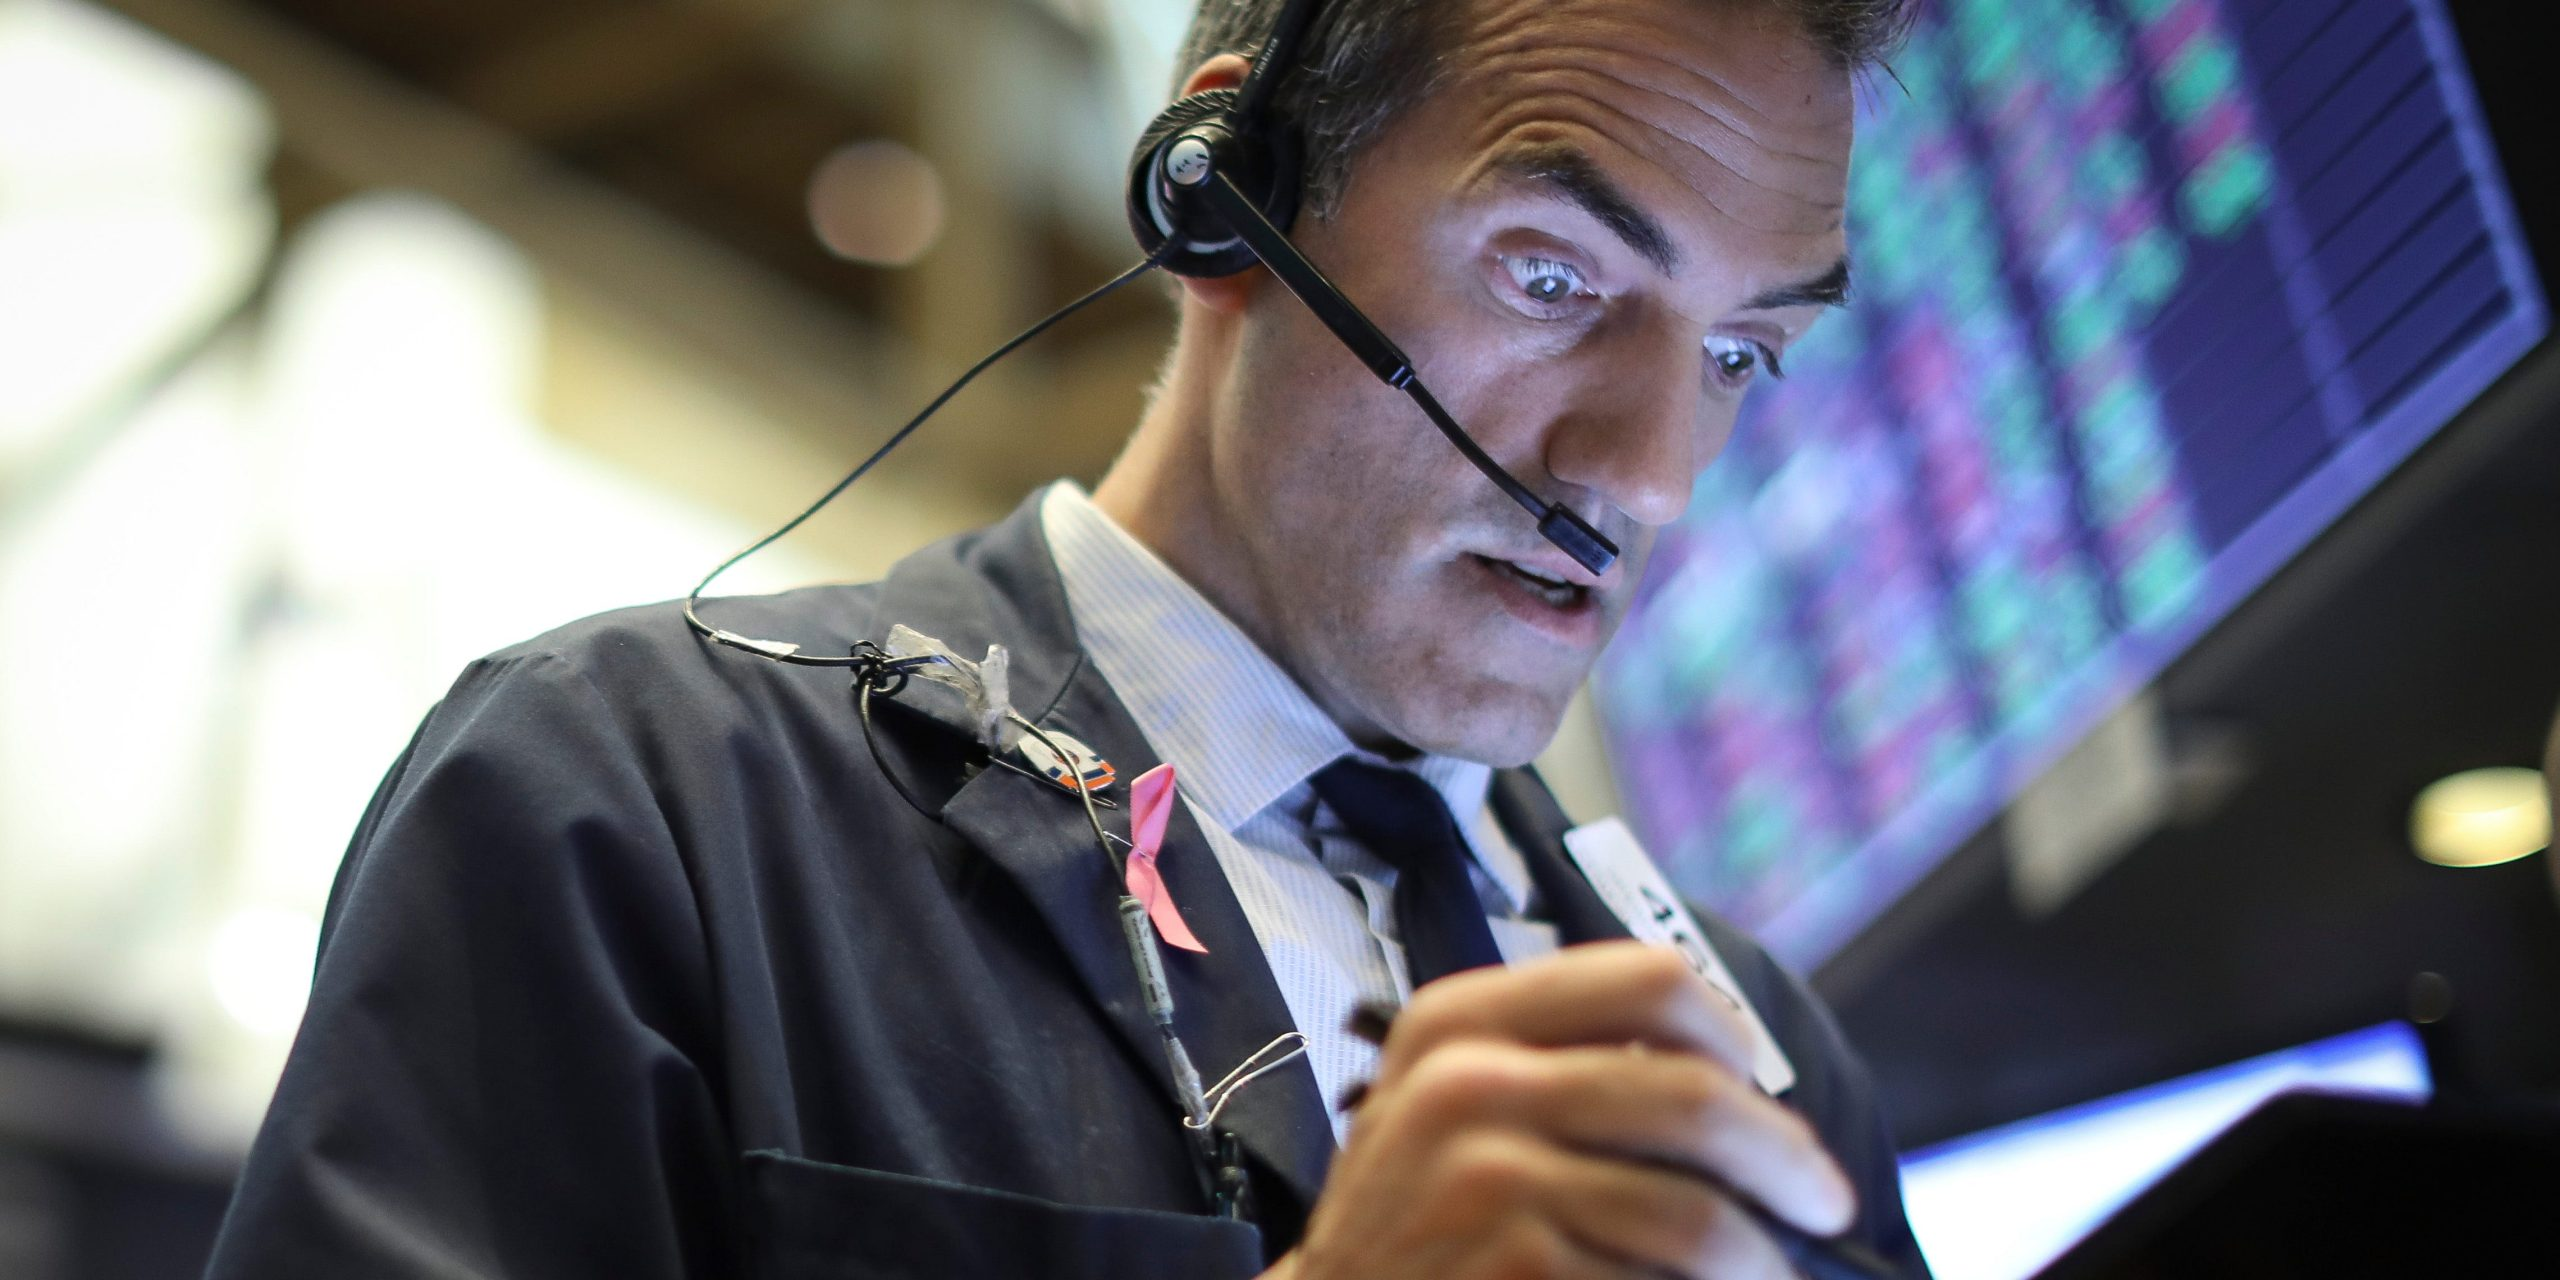 3 reasons the current stock market sell-off could be more than a normal correction, according to DataTrek